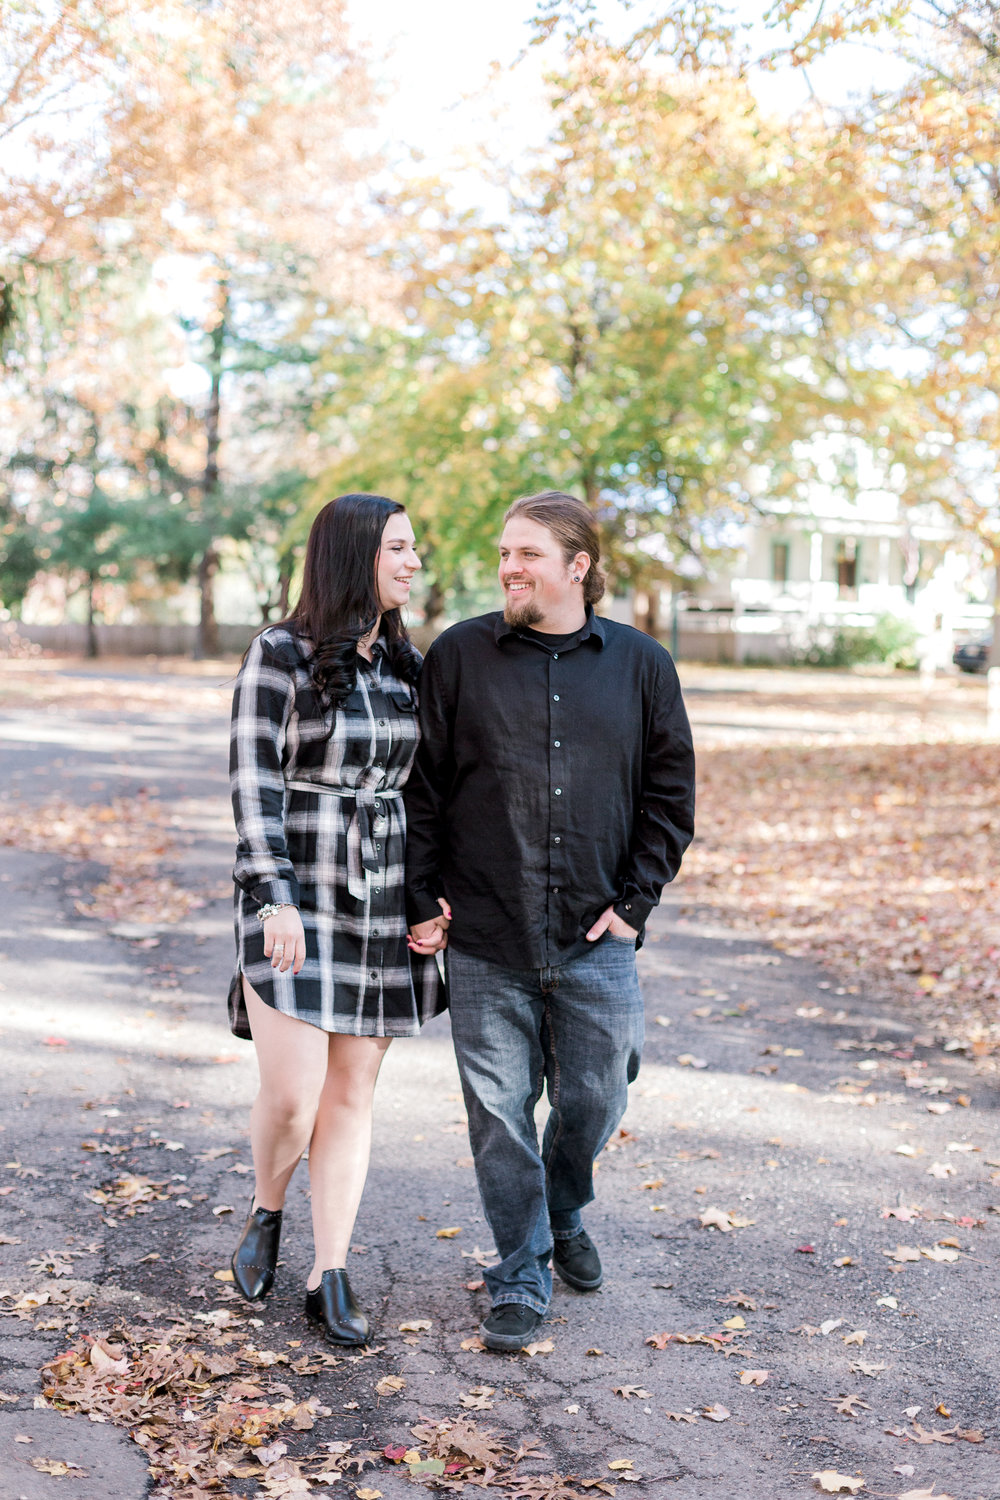 Collingswood New Jersey Fall Engagement Session Lehigh Valley wedding and lifestyle photographer Lytle Photo Co (60 of 95).jpg